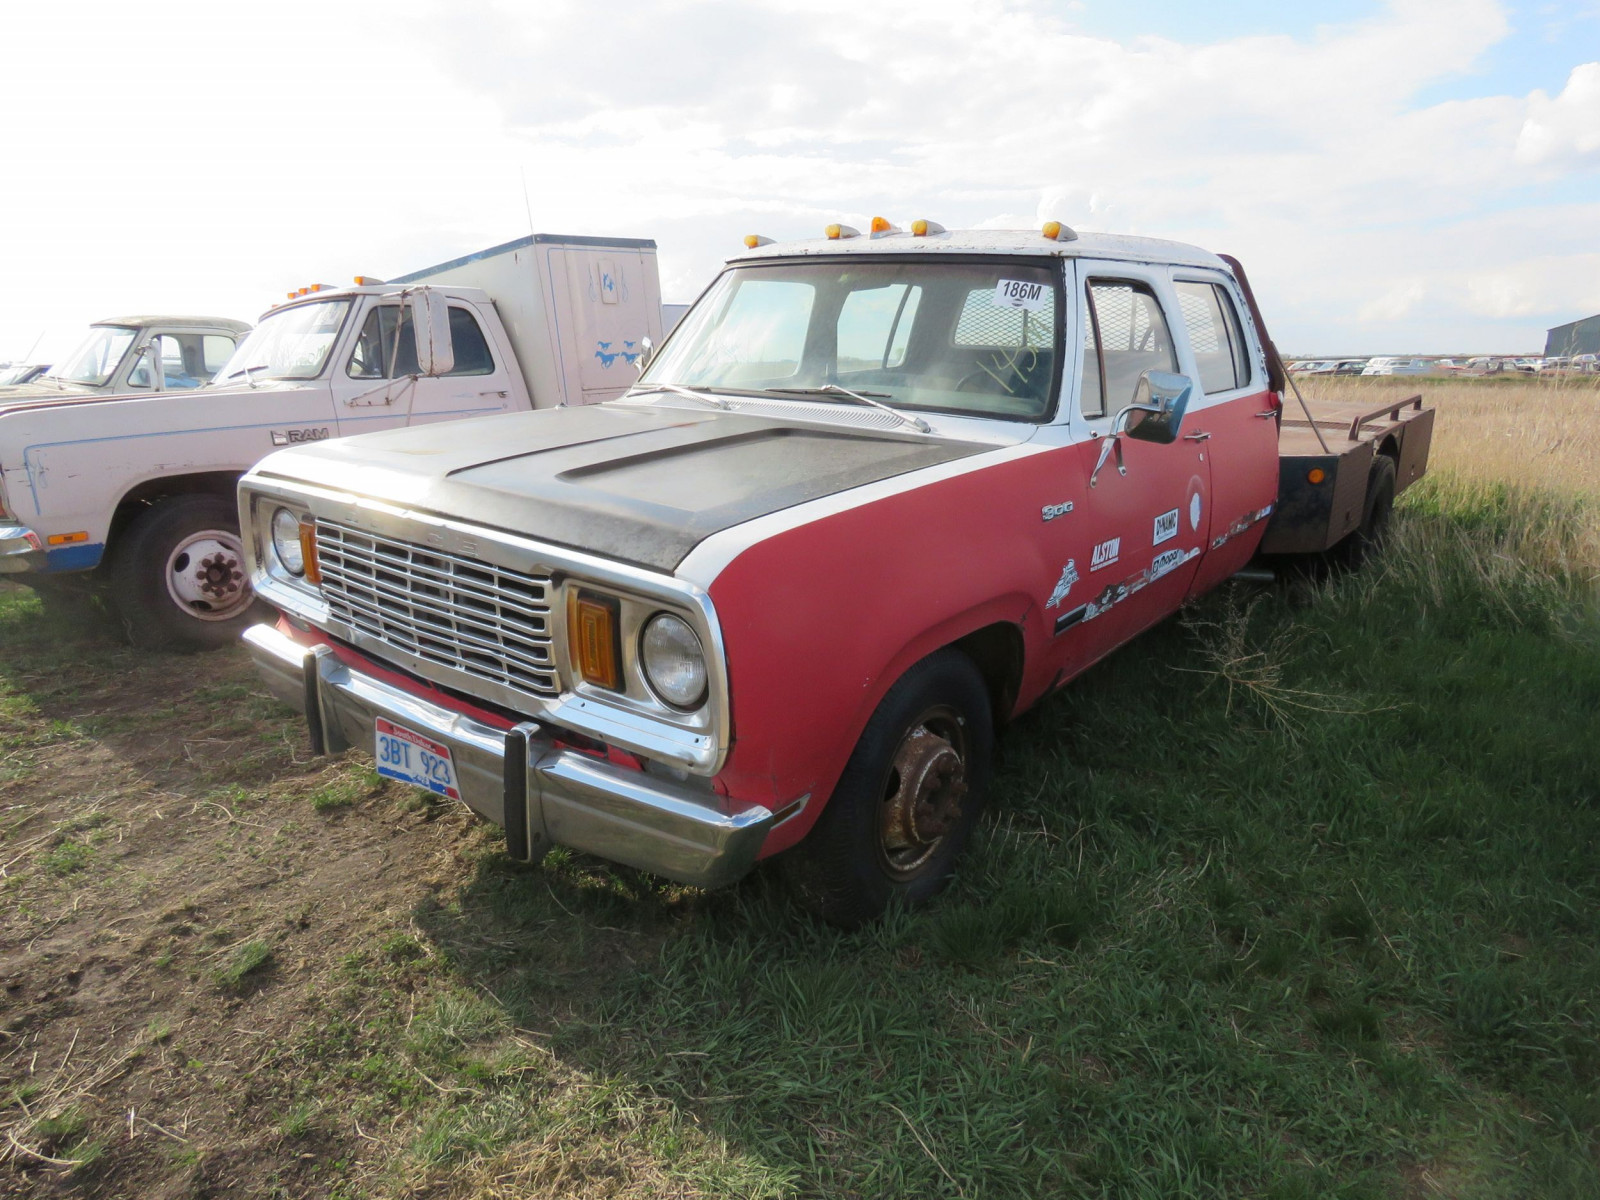 1976 Dodge Crewcab Pickup - Image 1